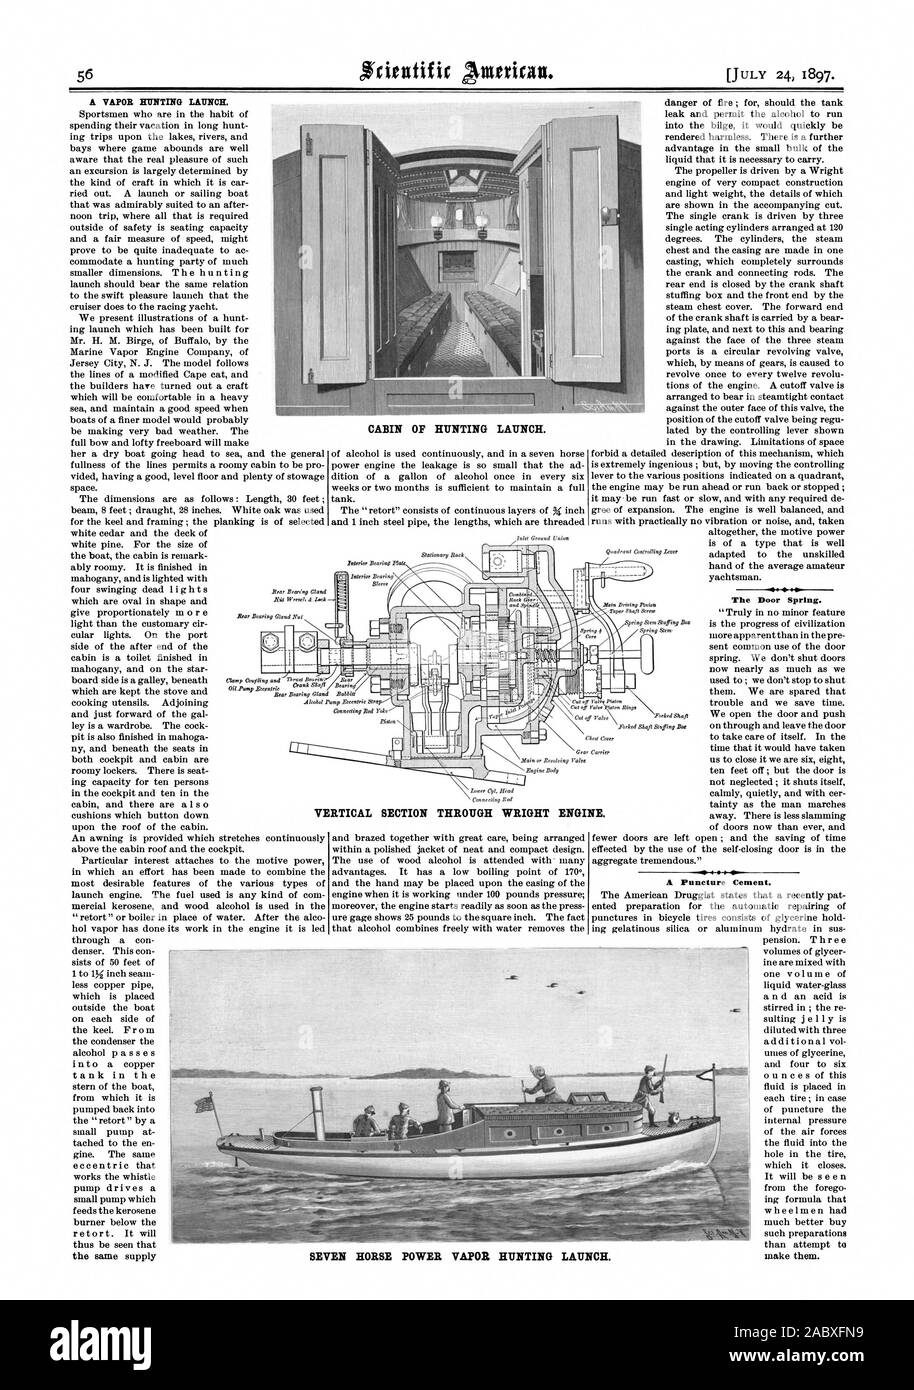 CABIN OF HUNTING LAUNCH.  The Door Spring. A Puncture Cement. VERTICAL SECTION THROUGH WRIGHT ENGINE. SEVEN HORSE POWER VAPOR HUNTING LAUNCH., scientific american, 1897-07-24 Stock Photo